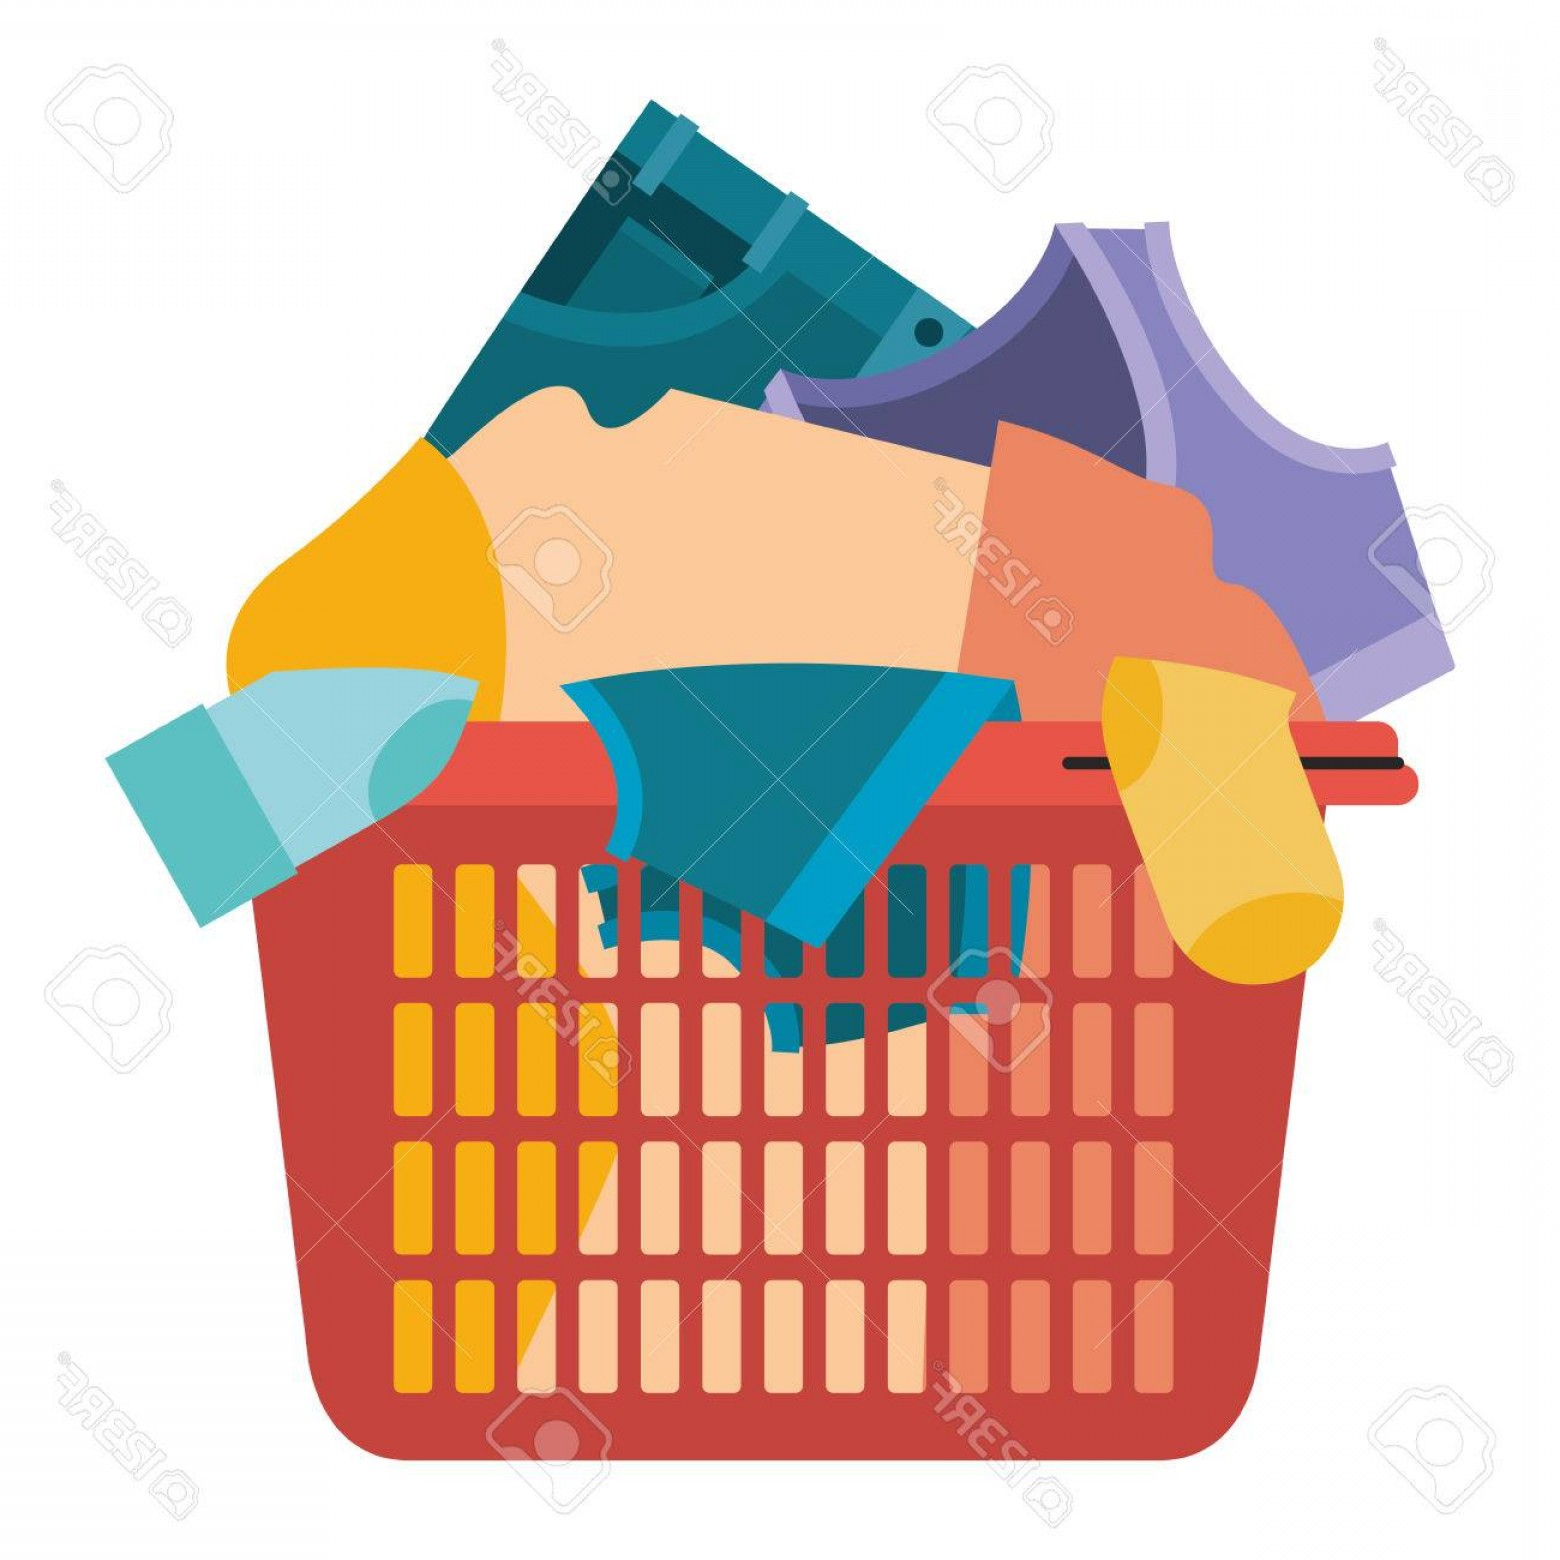 Clothes For Washing Vector: Photocolorful Silhouette Of Laundry Basket With Heap Of Clothes Vector Illustration